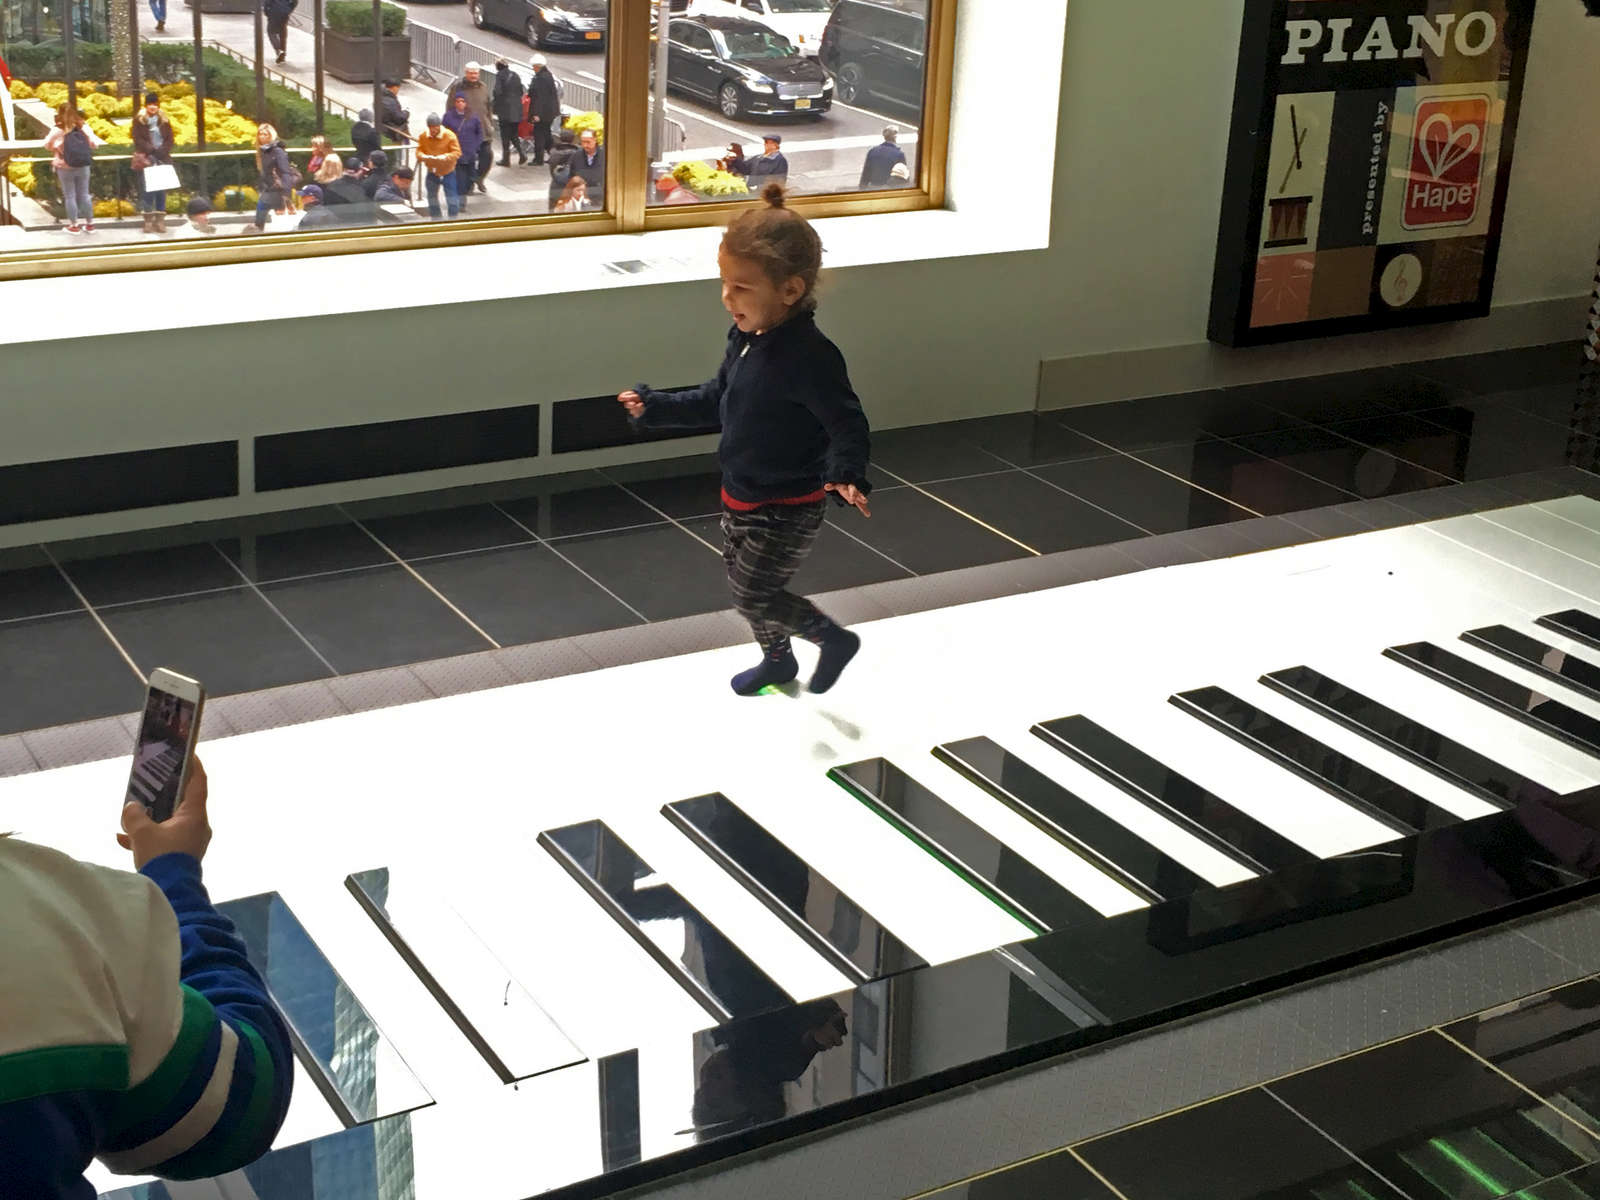 Young girl walks on over-sized piano, FAO Schwartz, NYC. Jon Chase photo